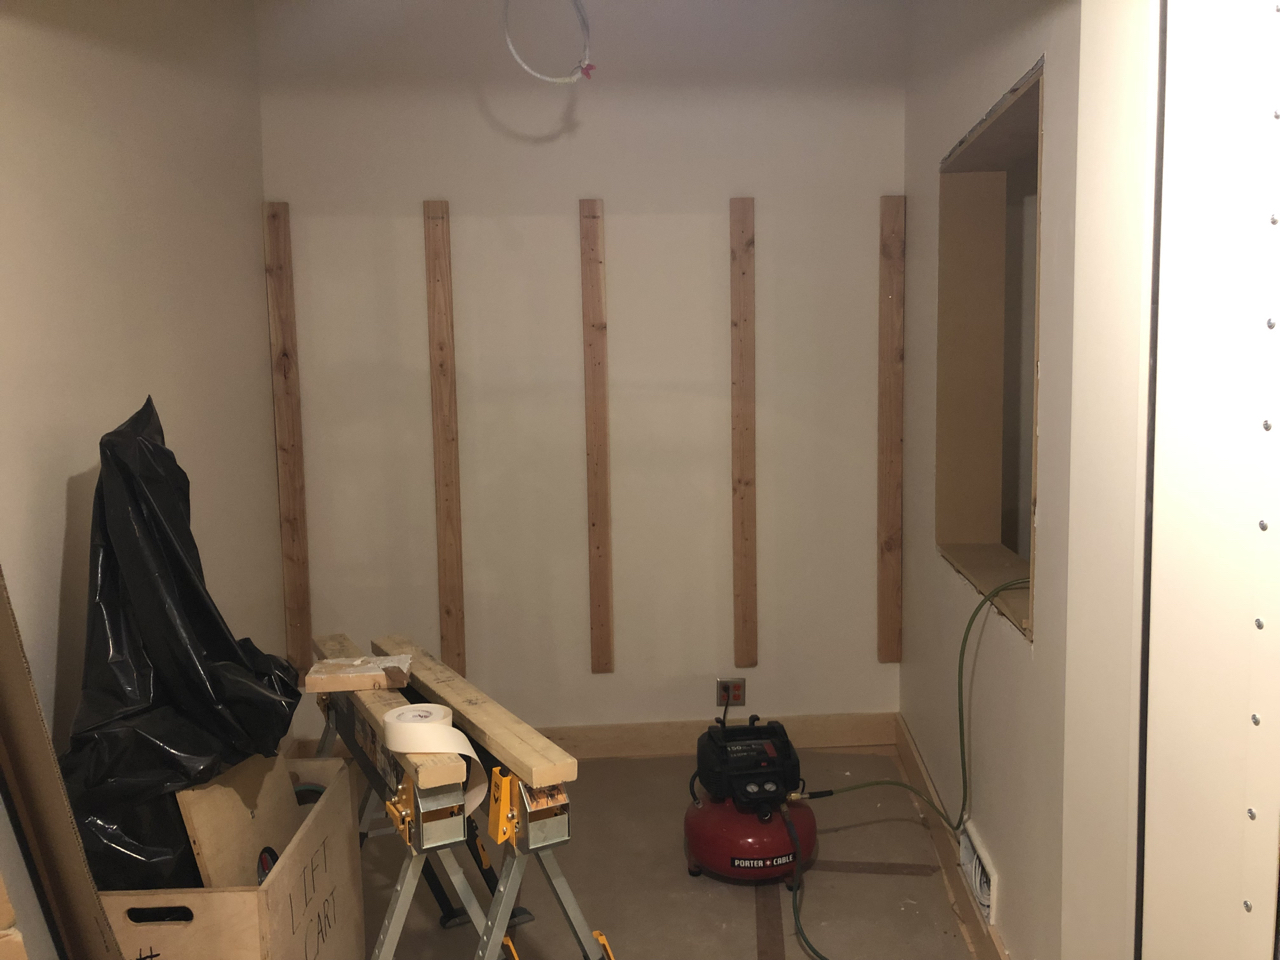 Framing for the wall treatments in studio 1 iso booths.